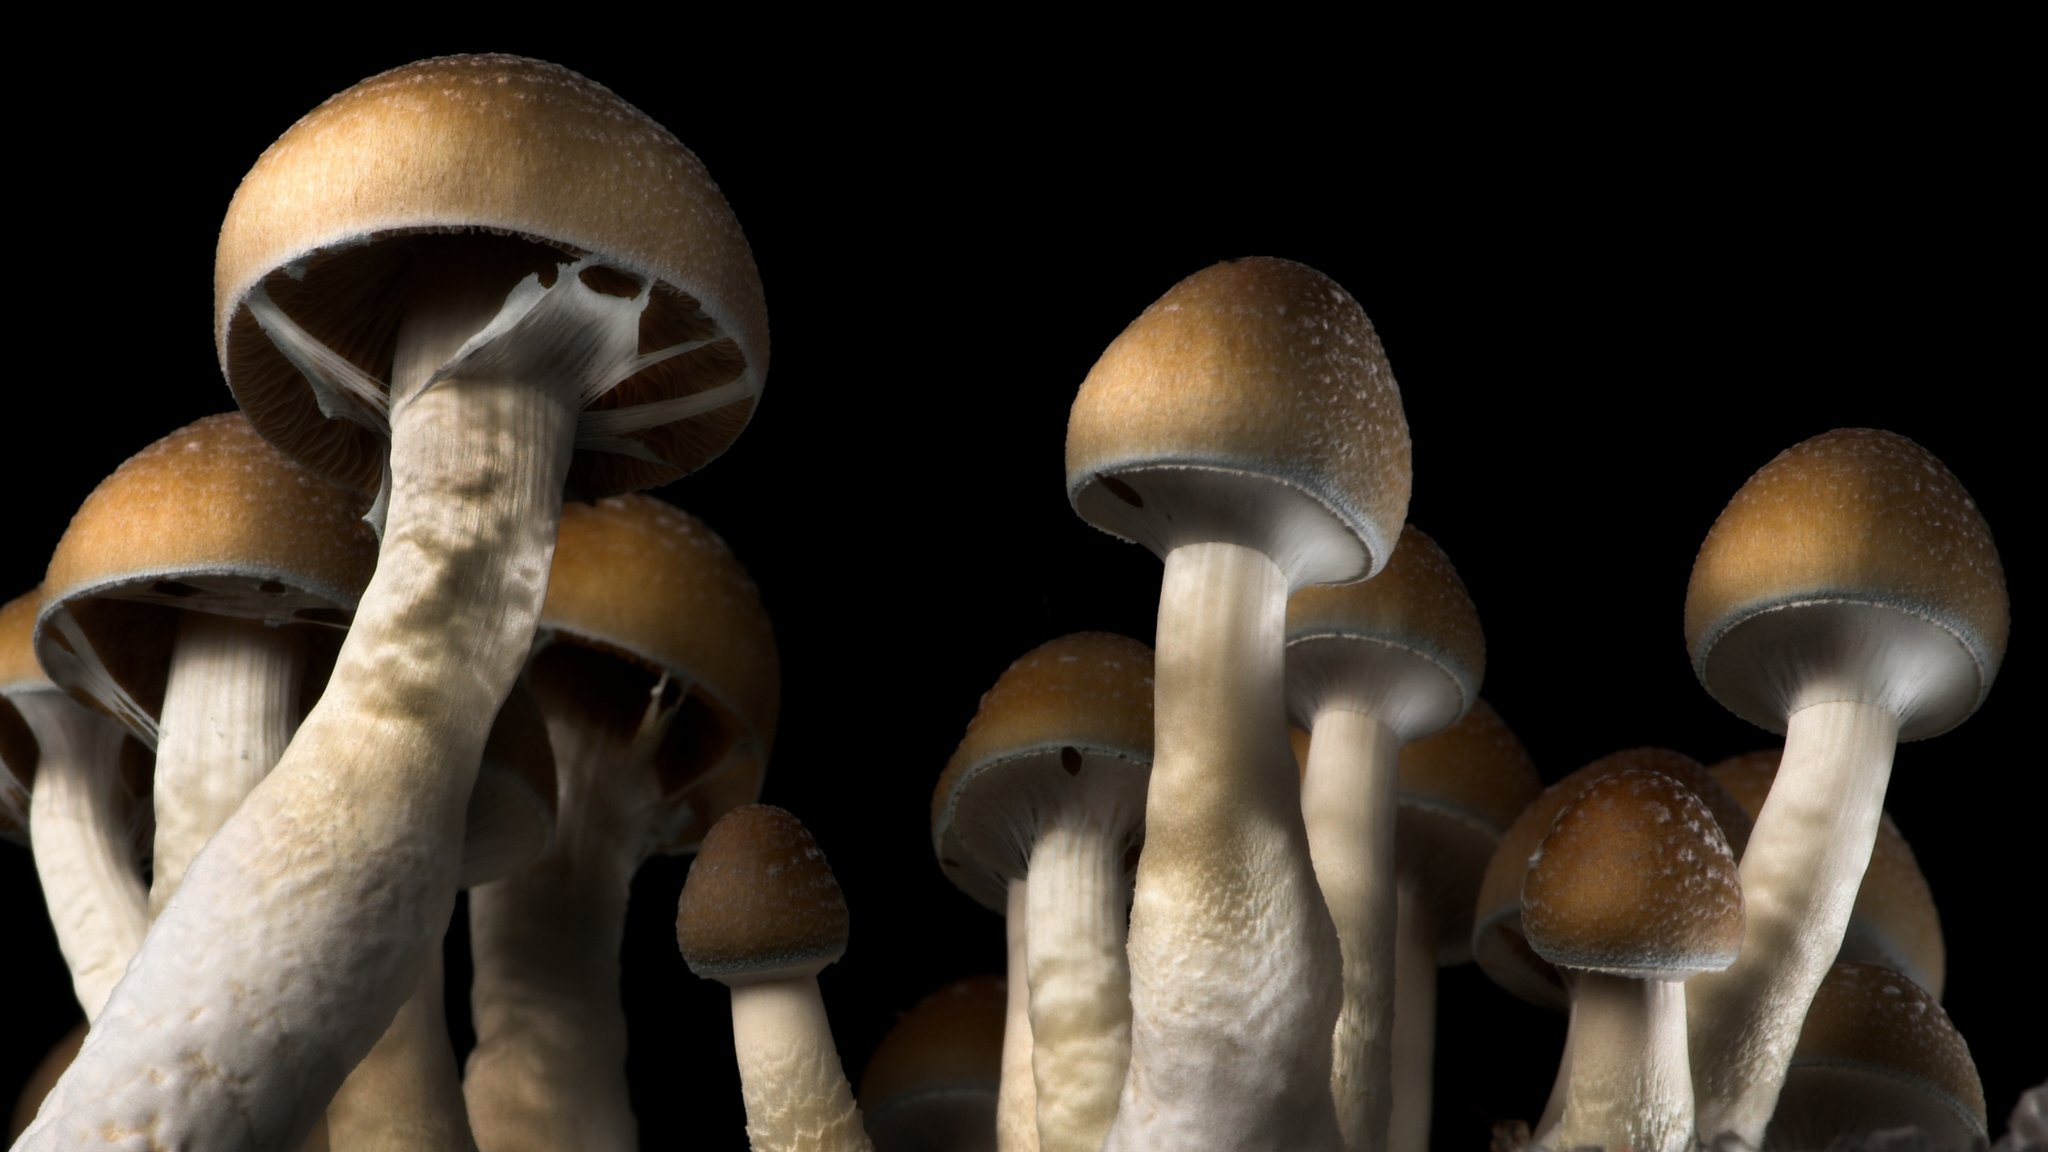 Magic mushrooms can 'reset' depressed brain